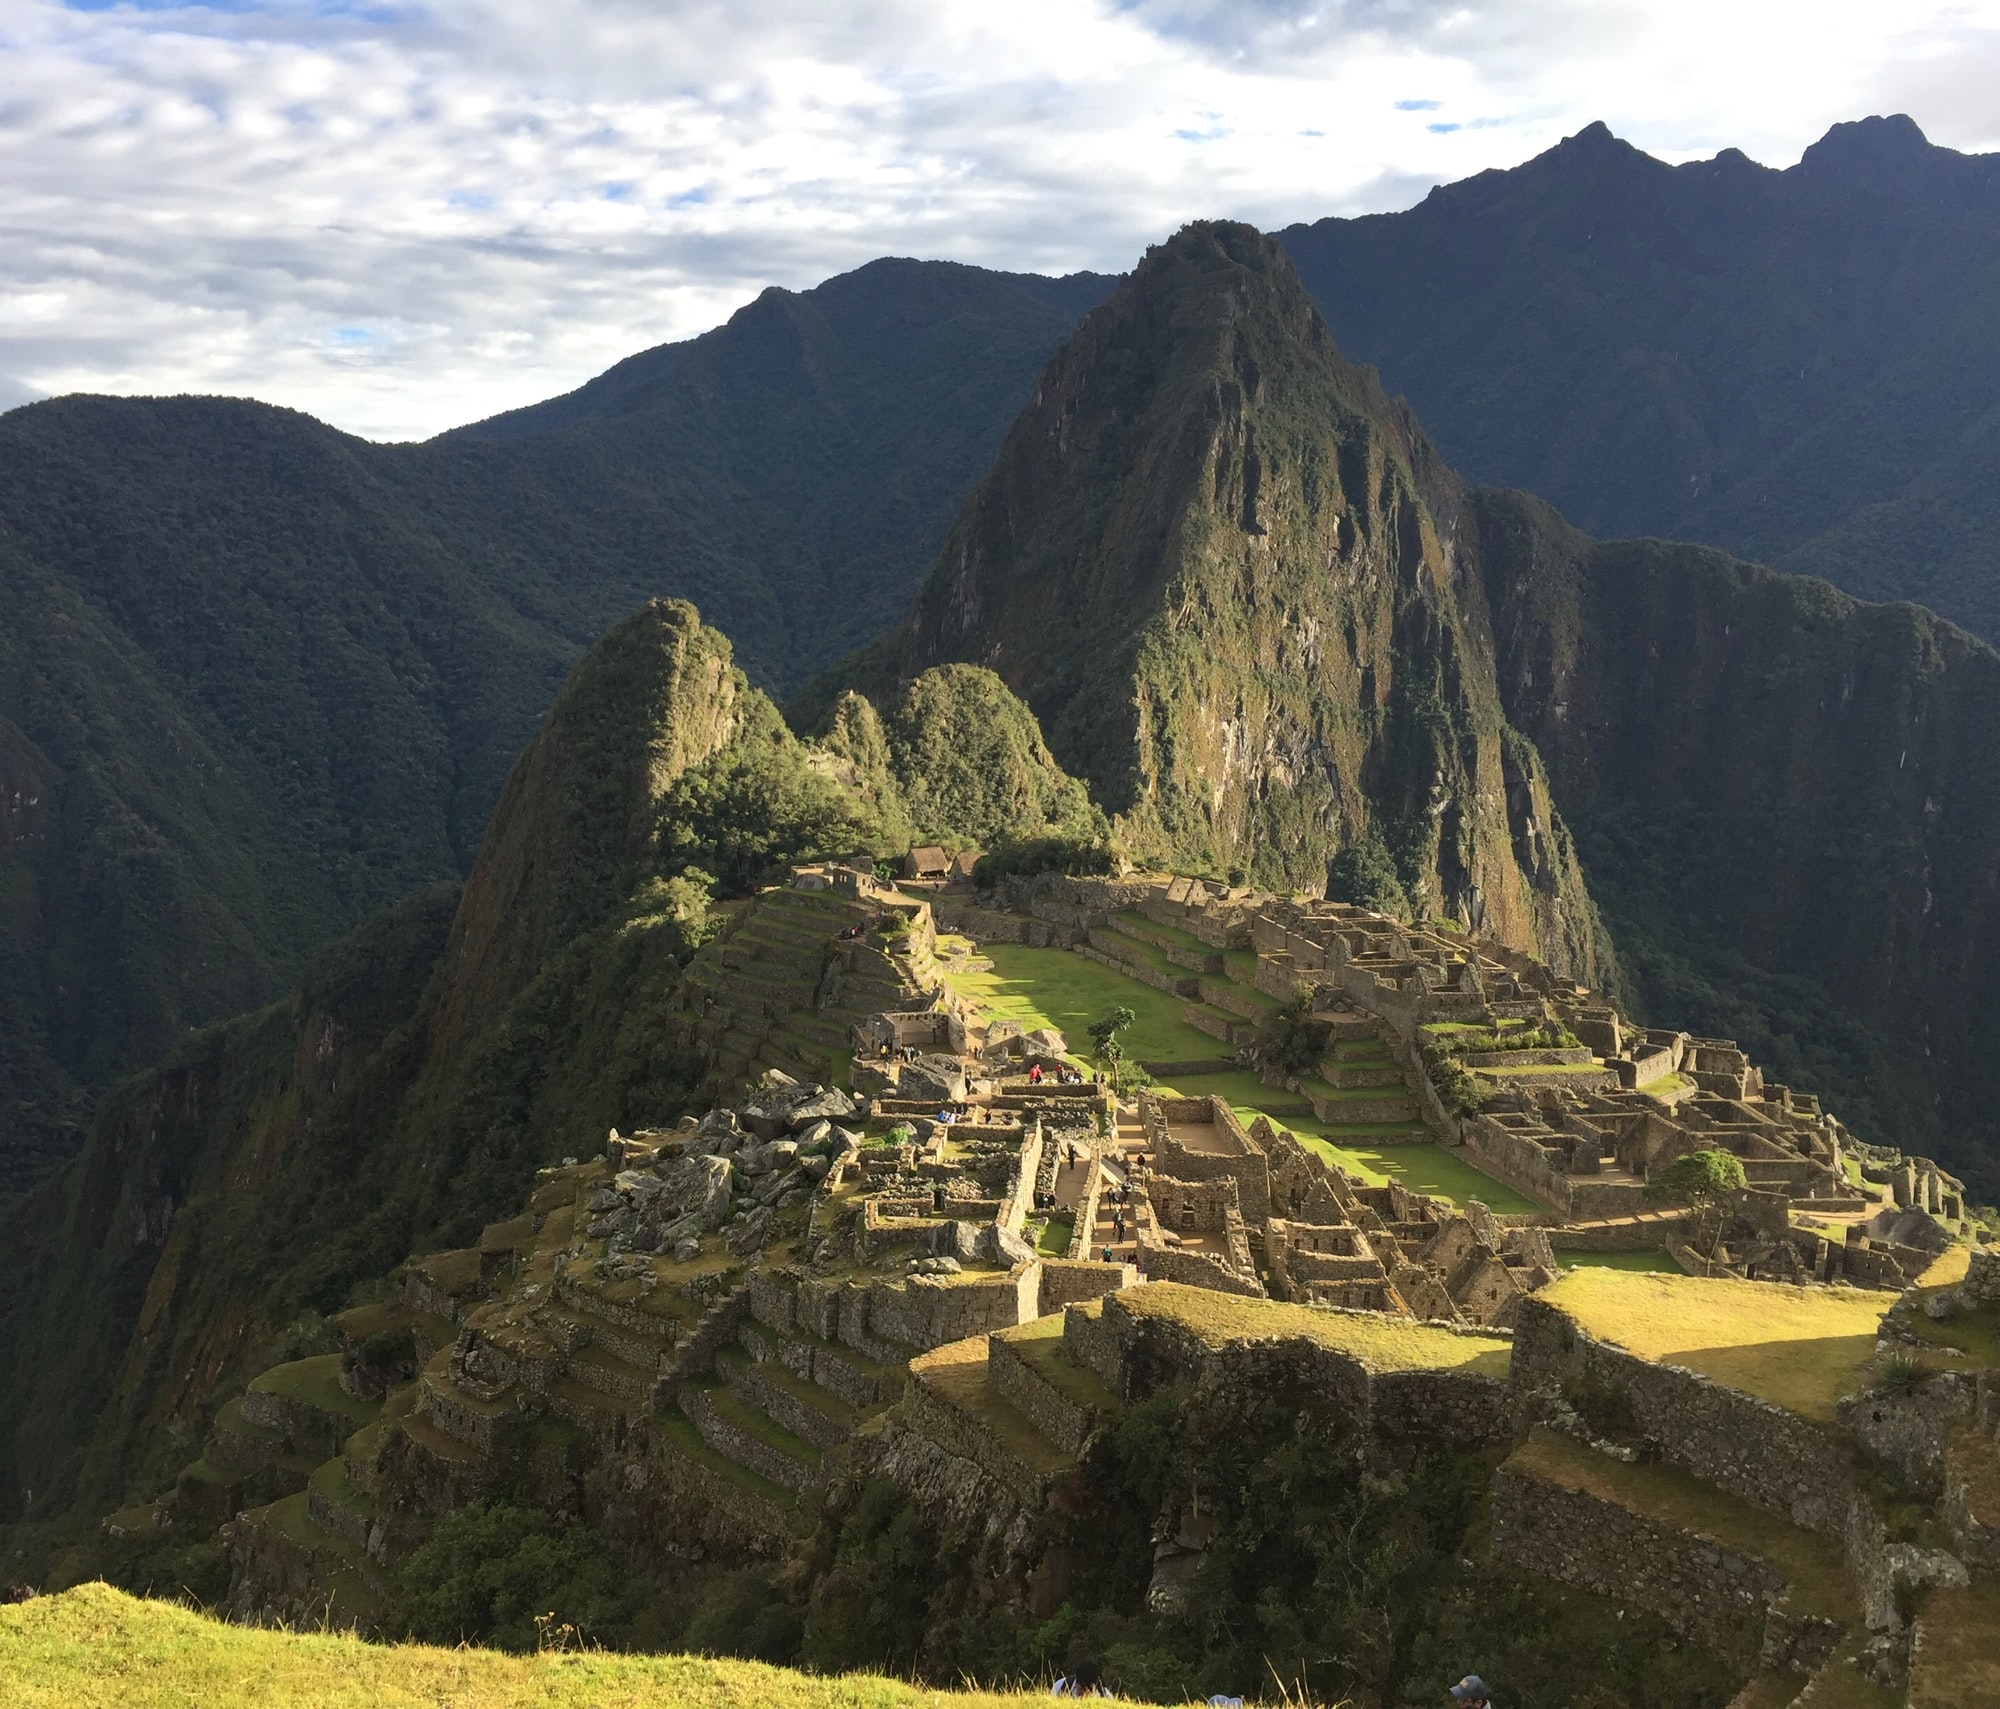 The Inca Citadel atop Machu Picchu with Huayna Picchu towering over it.